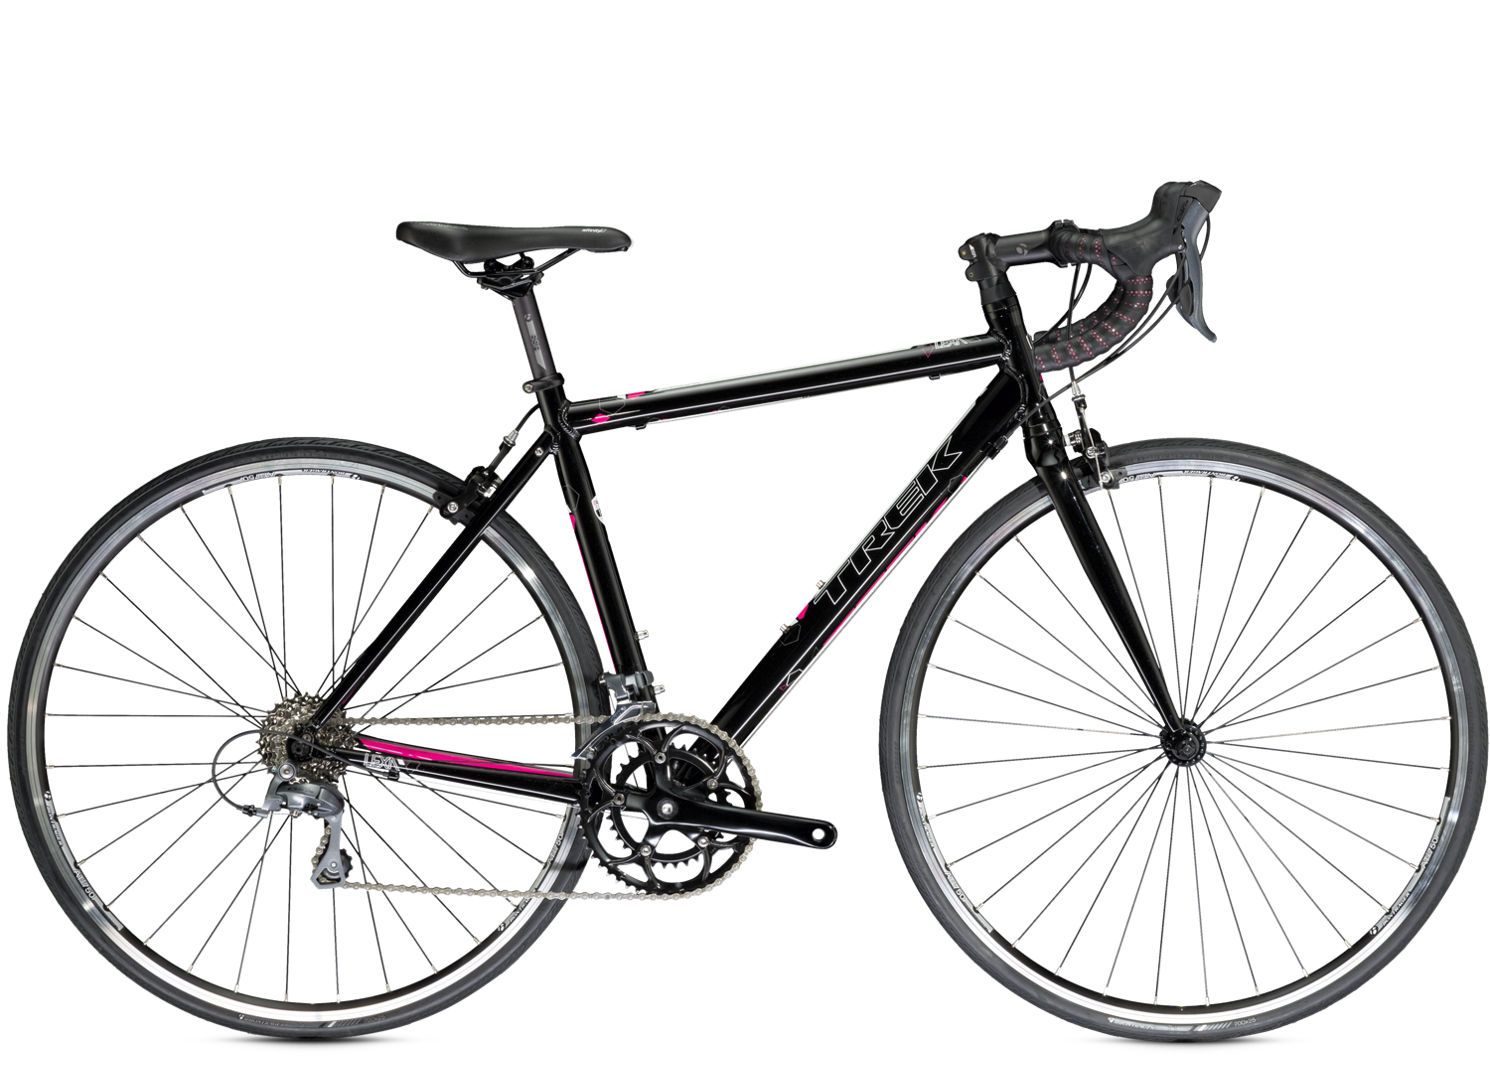 trek lexa 1490 in black and hot pink  this is my new baby